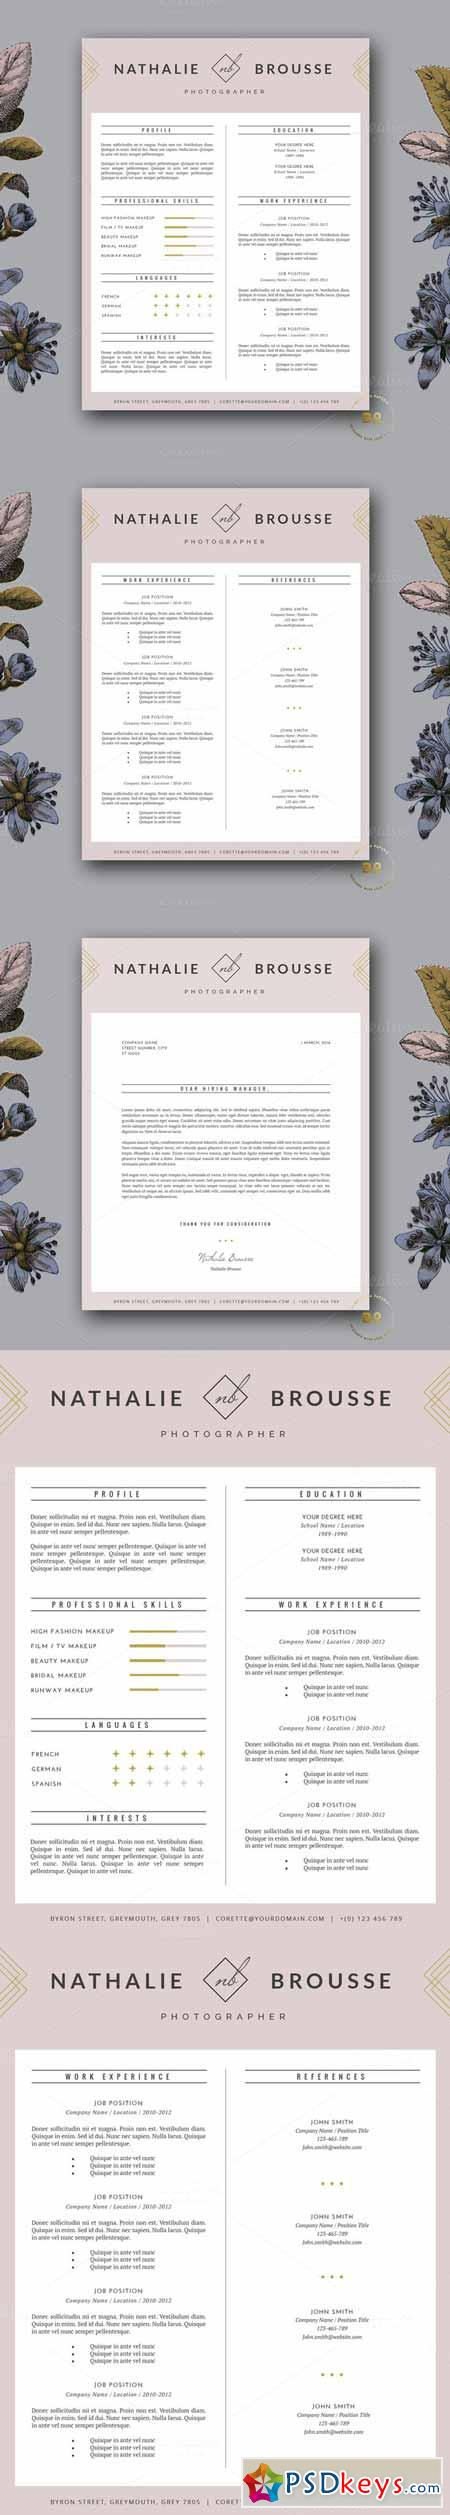 feminine resume template for ms word 213475 free download 1425946375 feminine resume template for ms